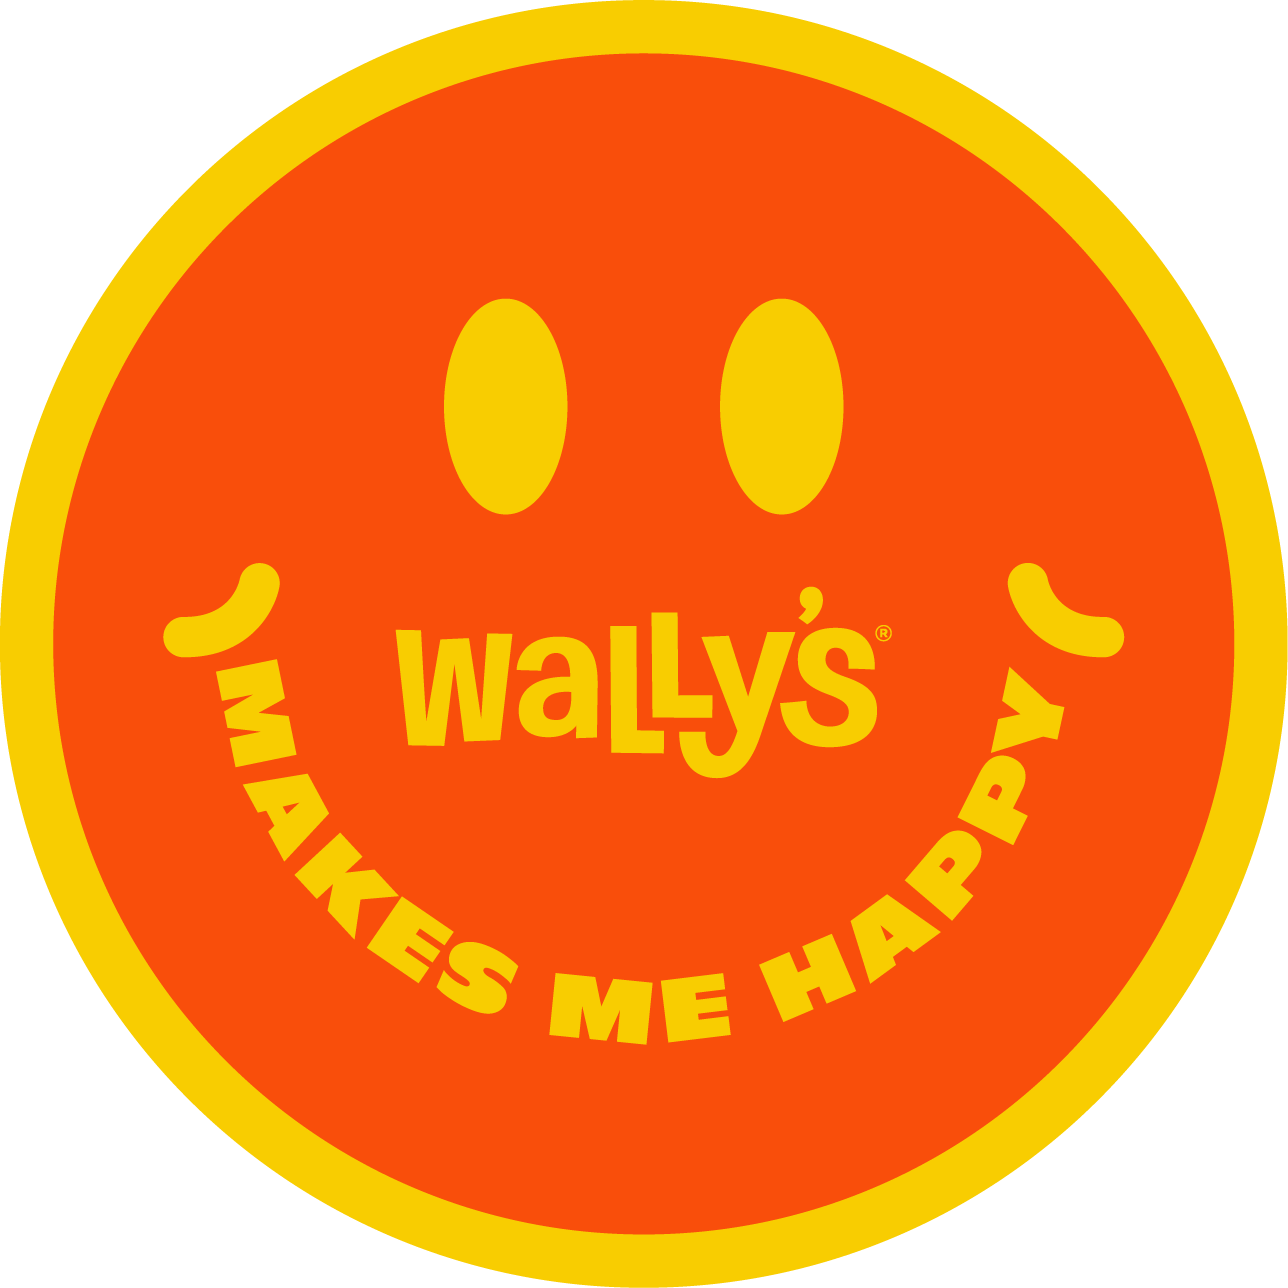 Wally's Stickers messages sticker-4